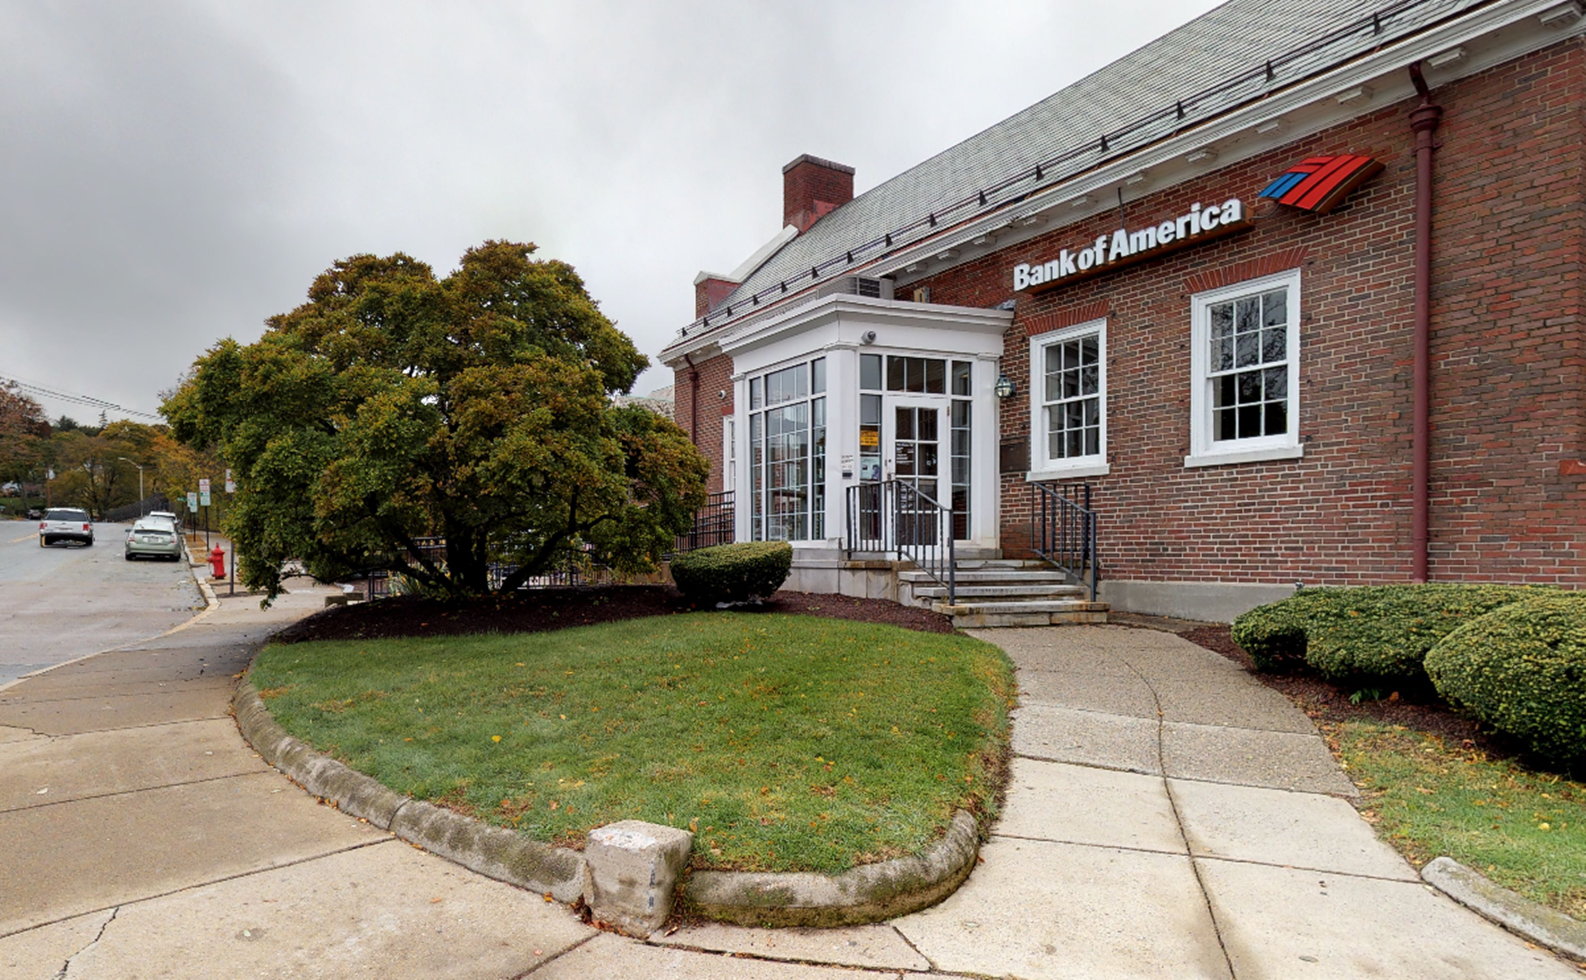 Bank of America financial center with walk-up ATM | 1 Chestnut St, West Newton, MA 02465